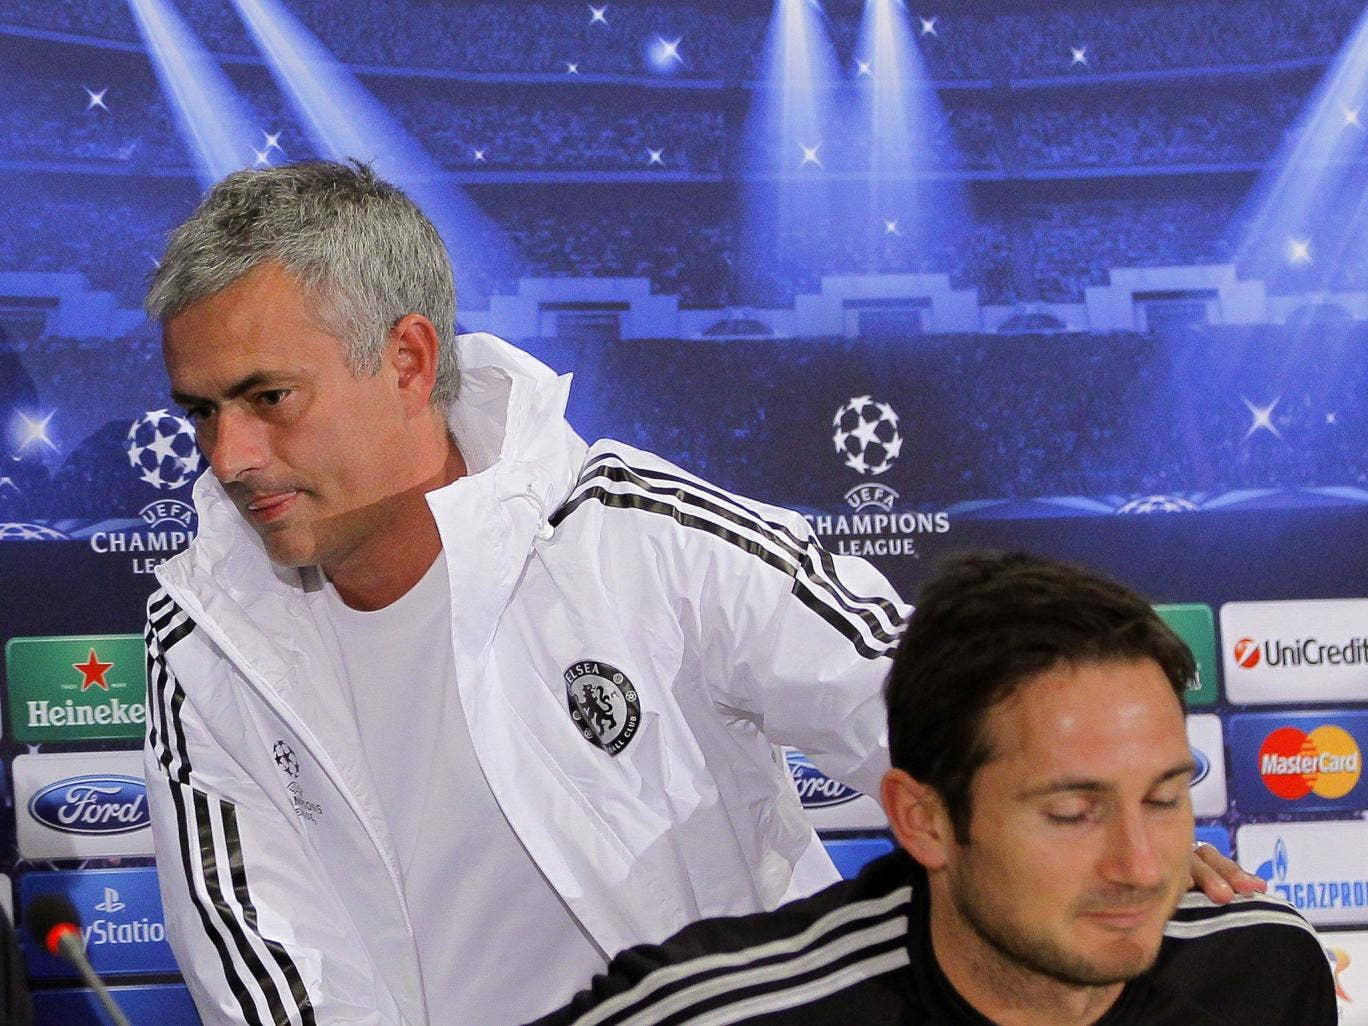 Jose Mourinho storms out of the Champions League press conference, leaving behind a bemused Frank Lampard